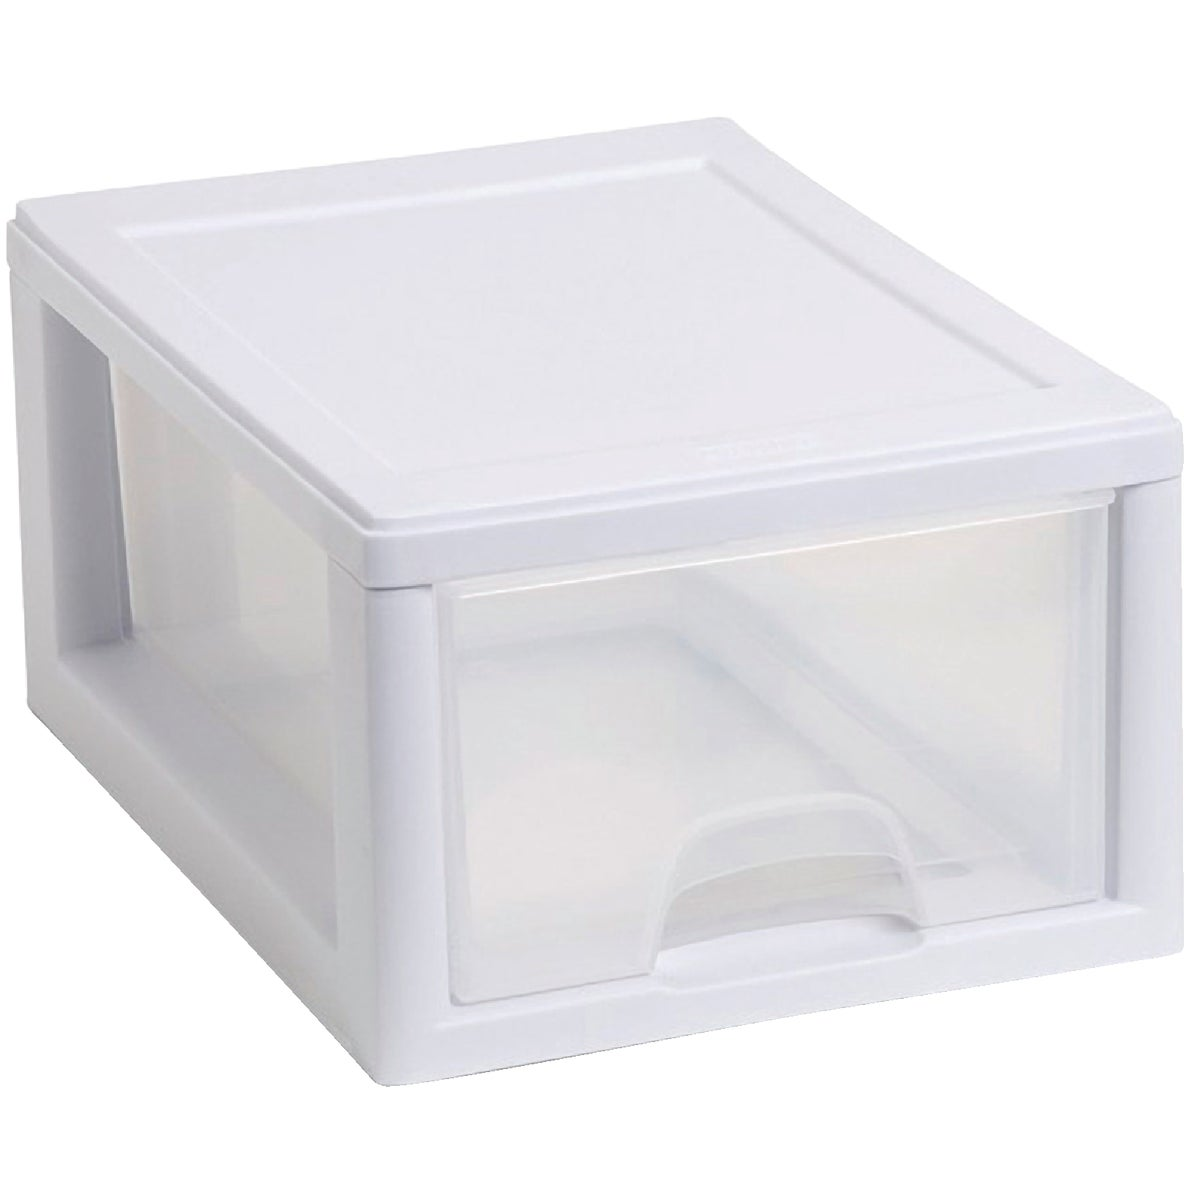 7QT STORAGE DRAWER